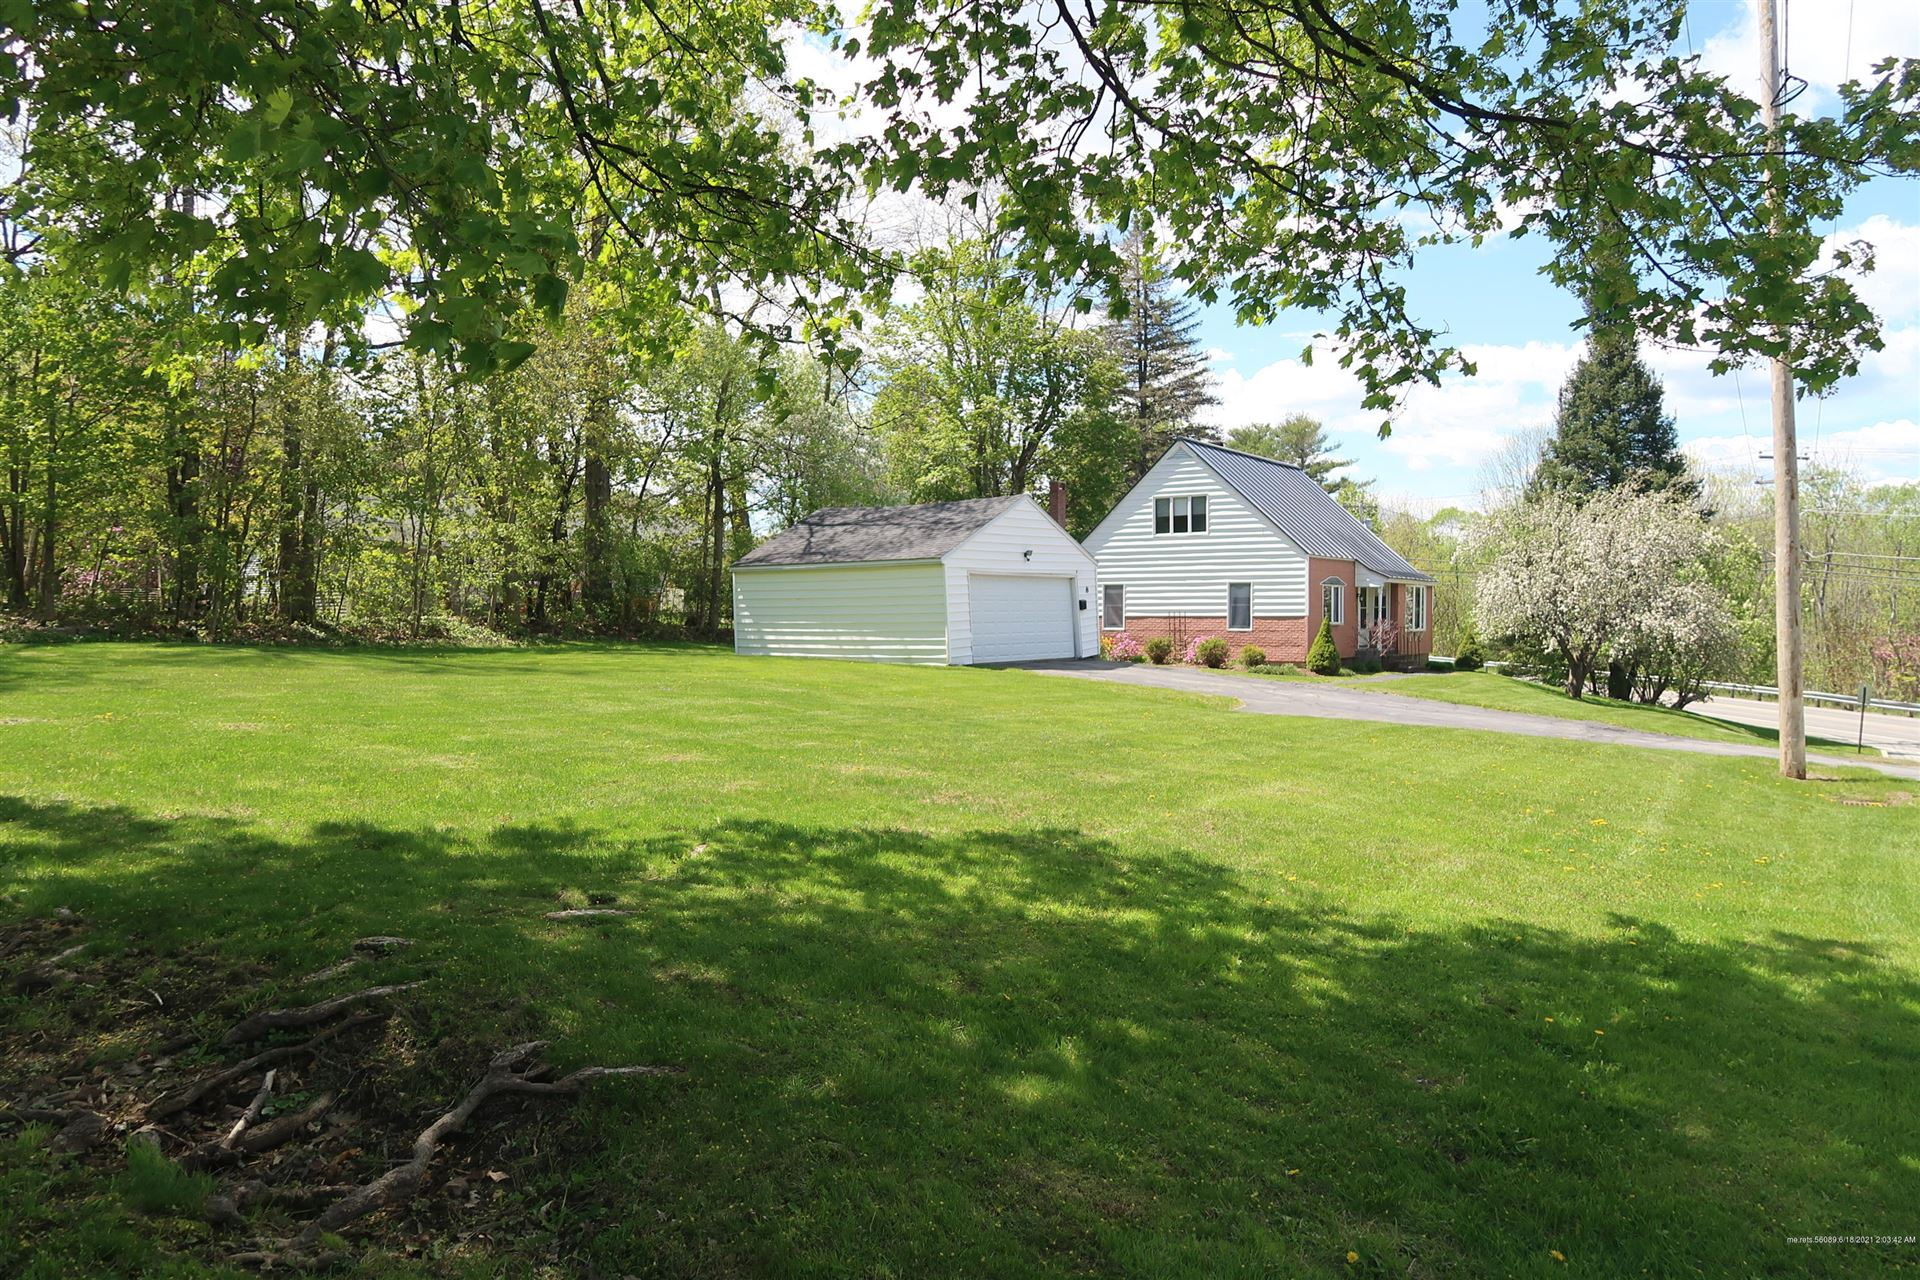 Photo of 8 Clifford Avenue, Winslow, ME 04901 (MLS # 1491535)